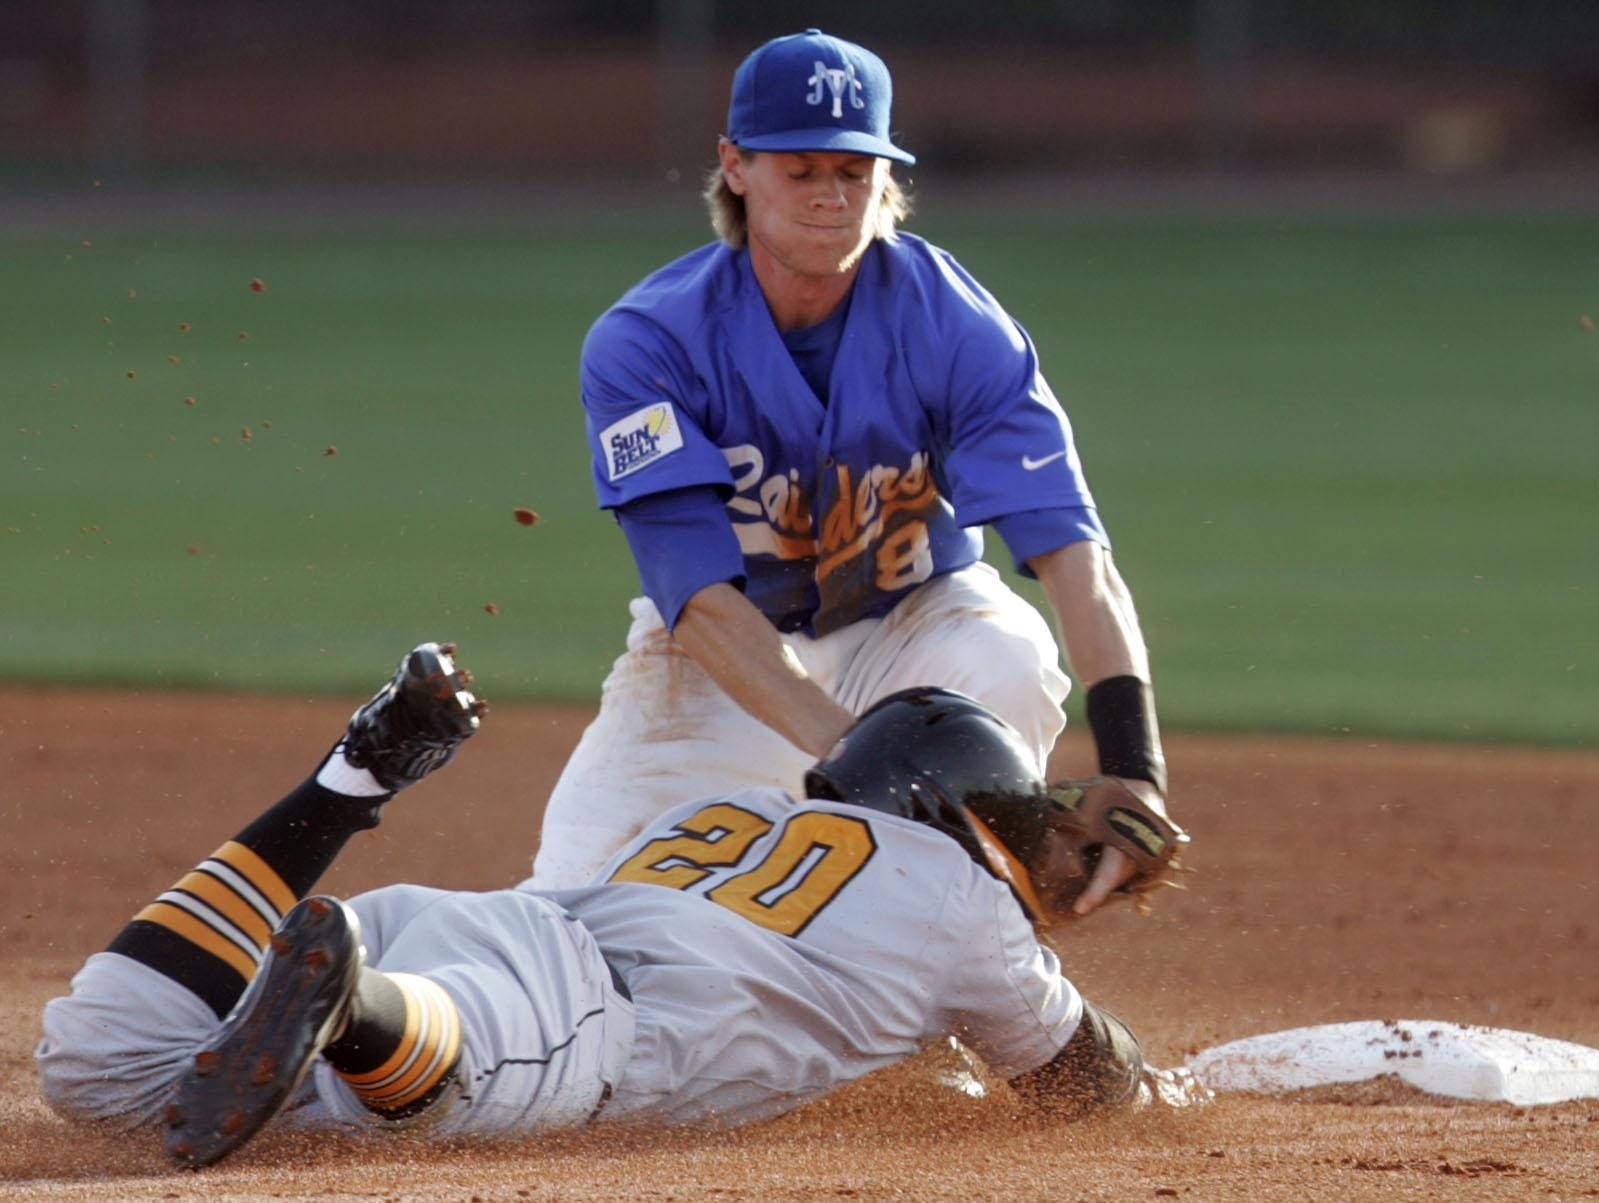 MTSU second baseman Dathan Prewett tags out Tennessee's Christin Stewart during a recent game. Stewart was drafted by Detroit with the 34th pick Monday